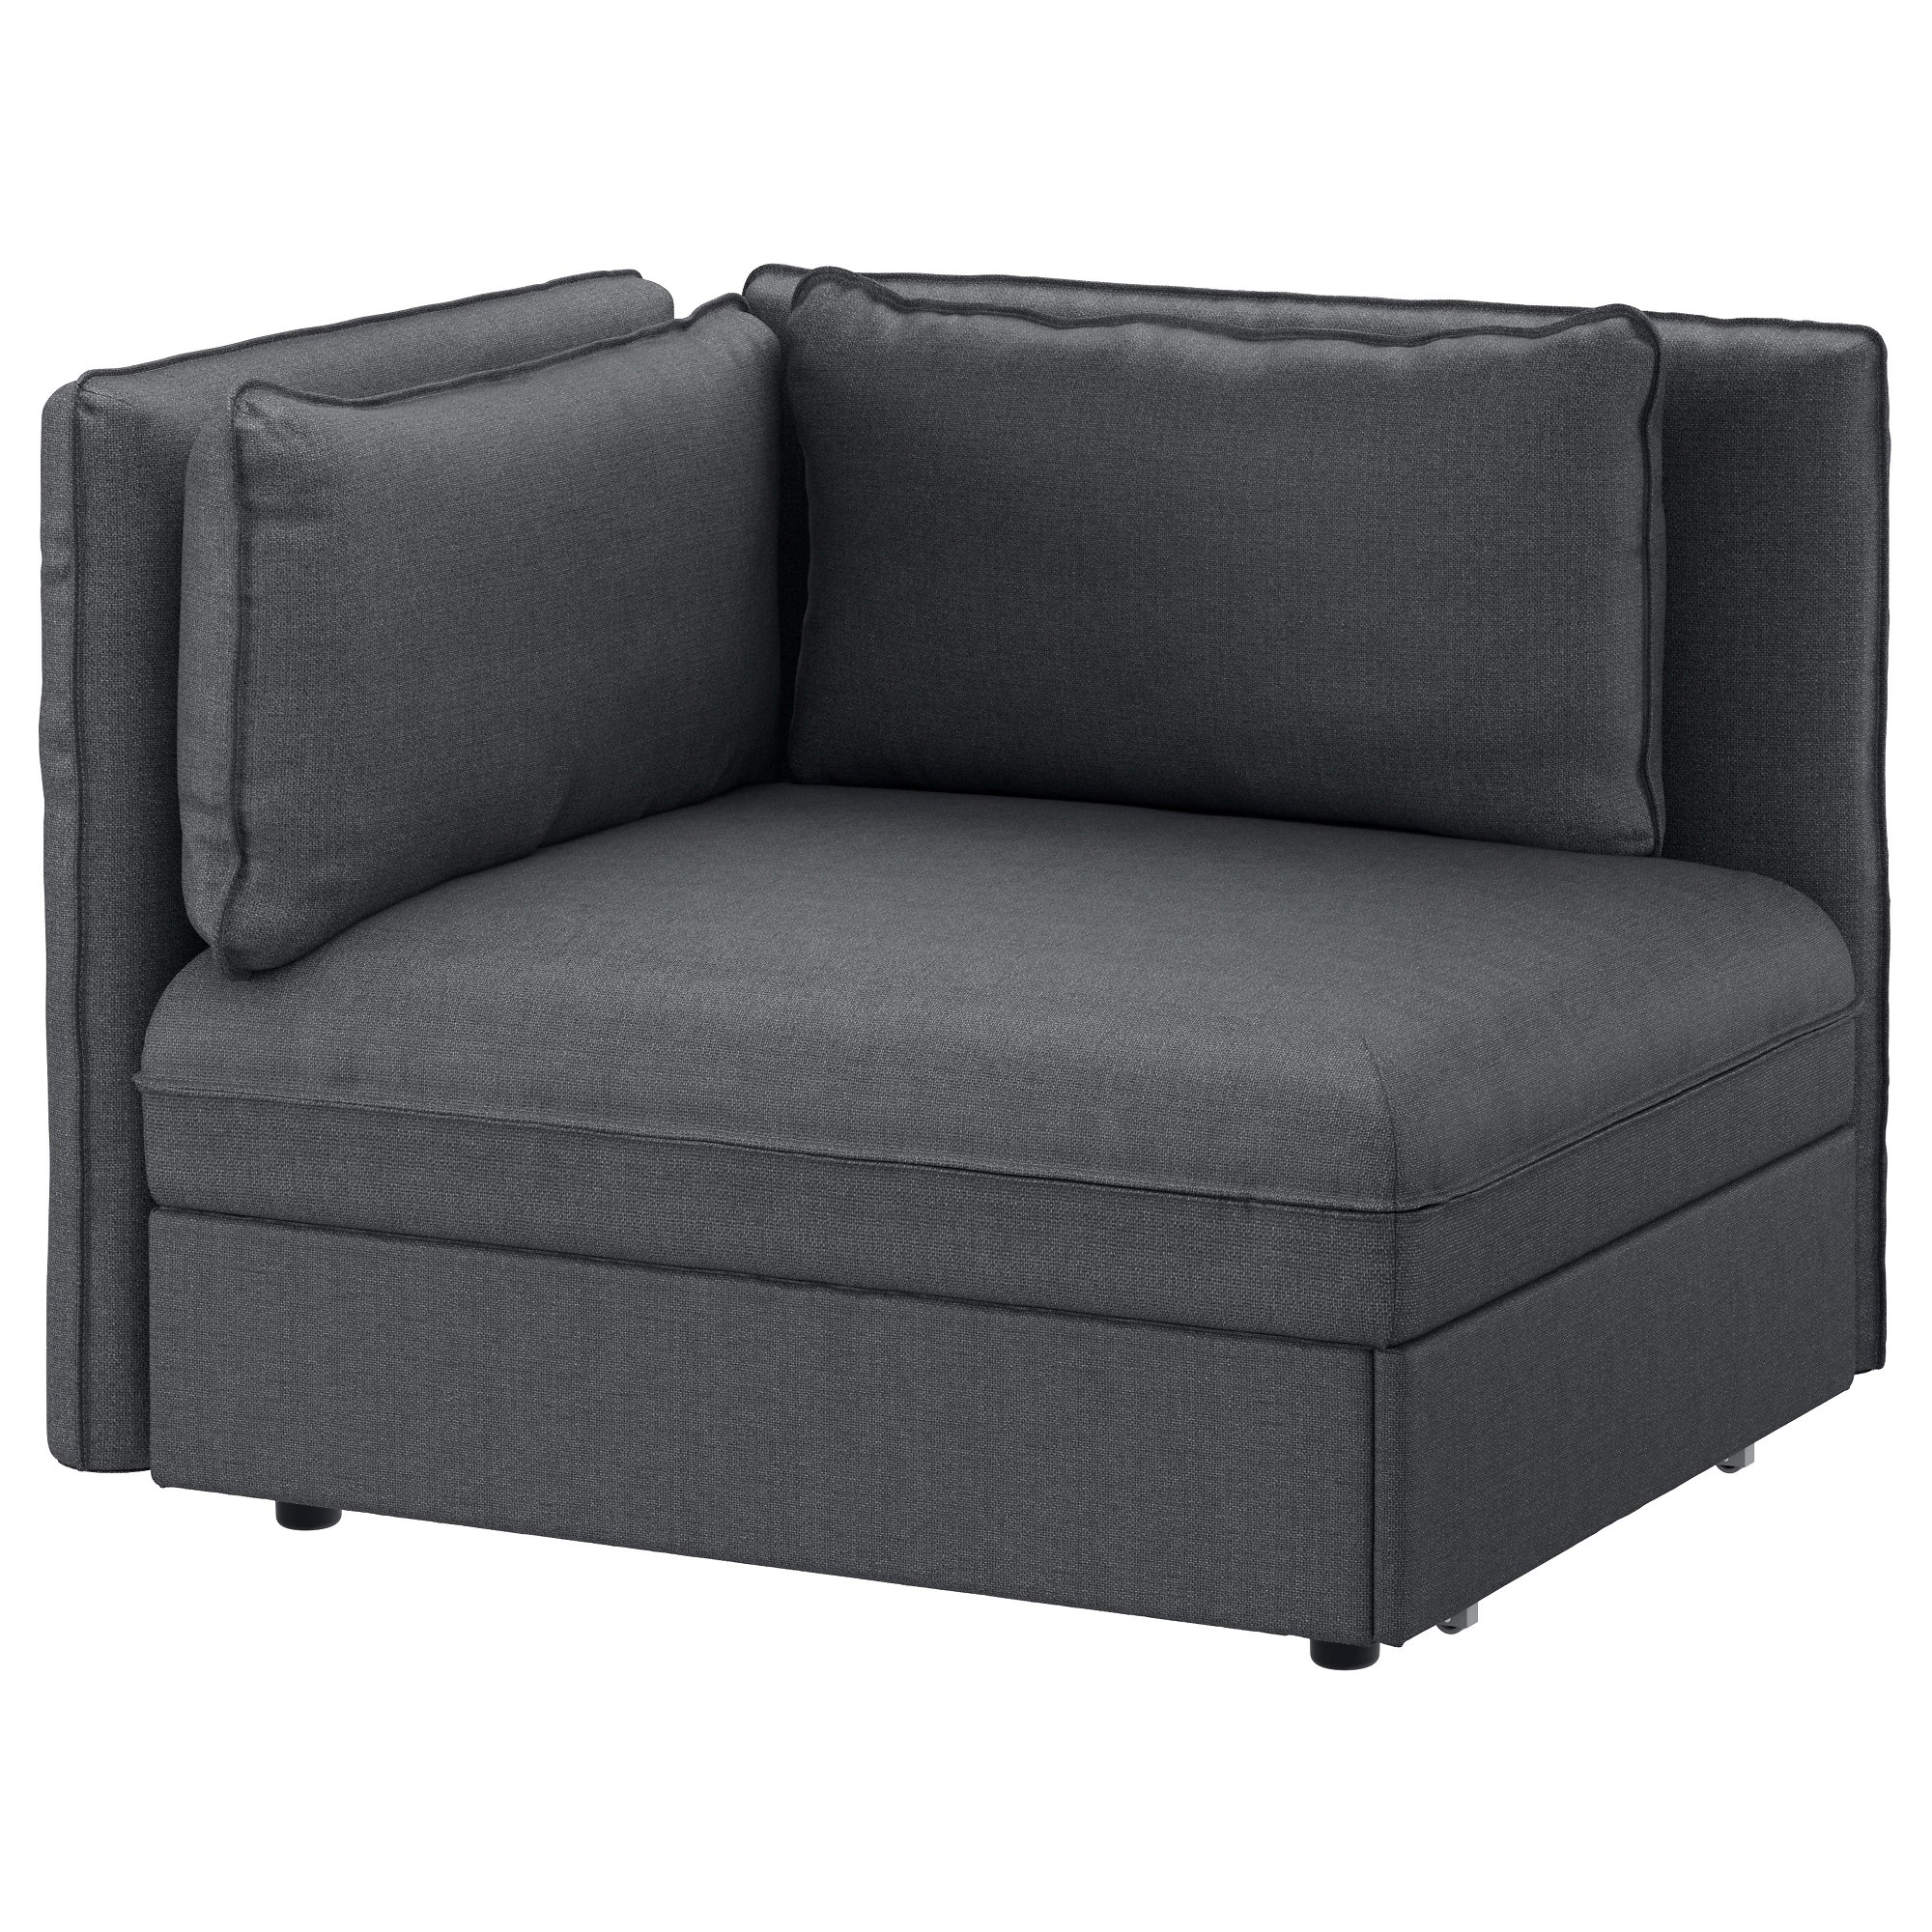 Ikea Sofa Vallentuna Erfahrung Vallentuna Sleeper Sectional 1 Seat Hillared Dark Gray